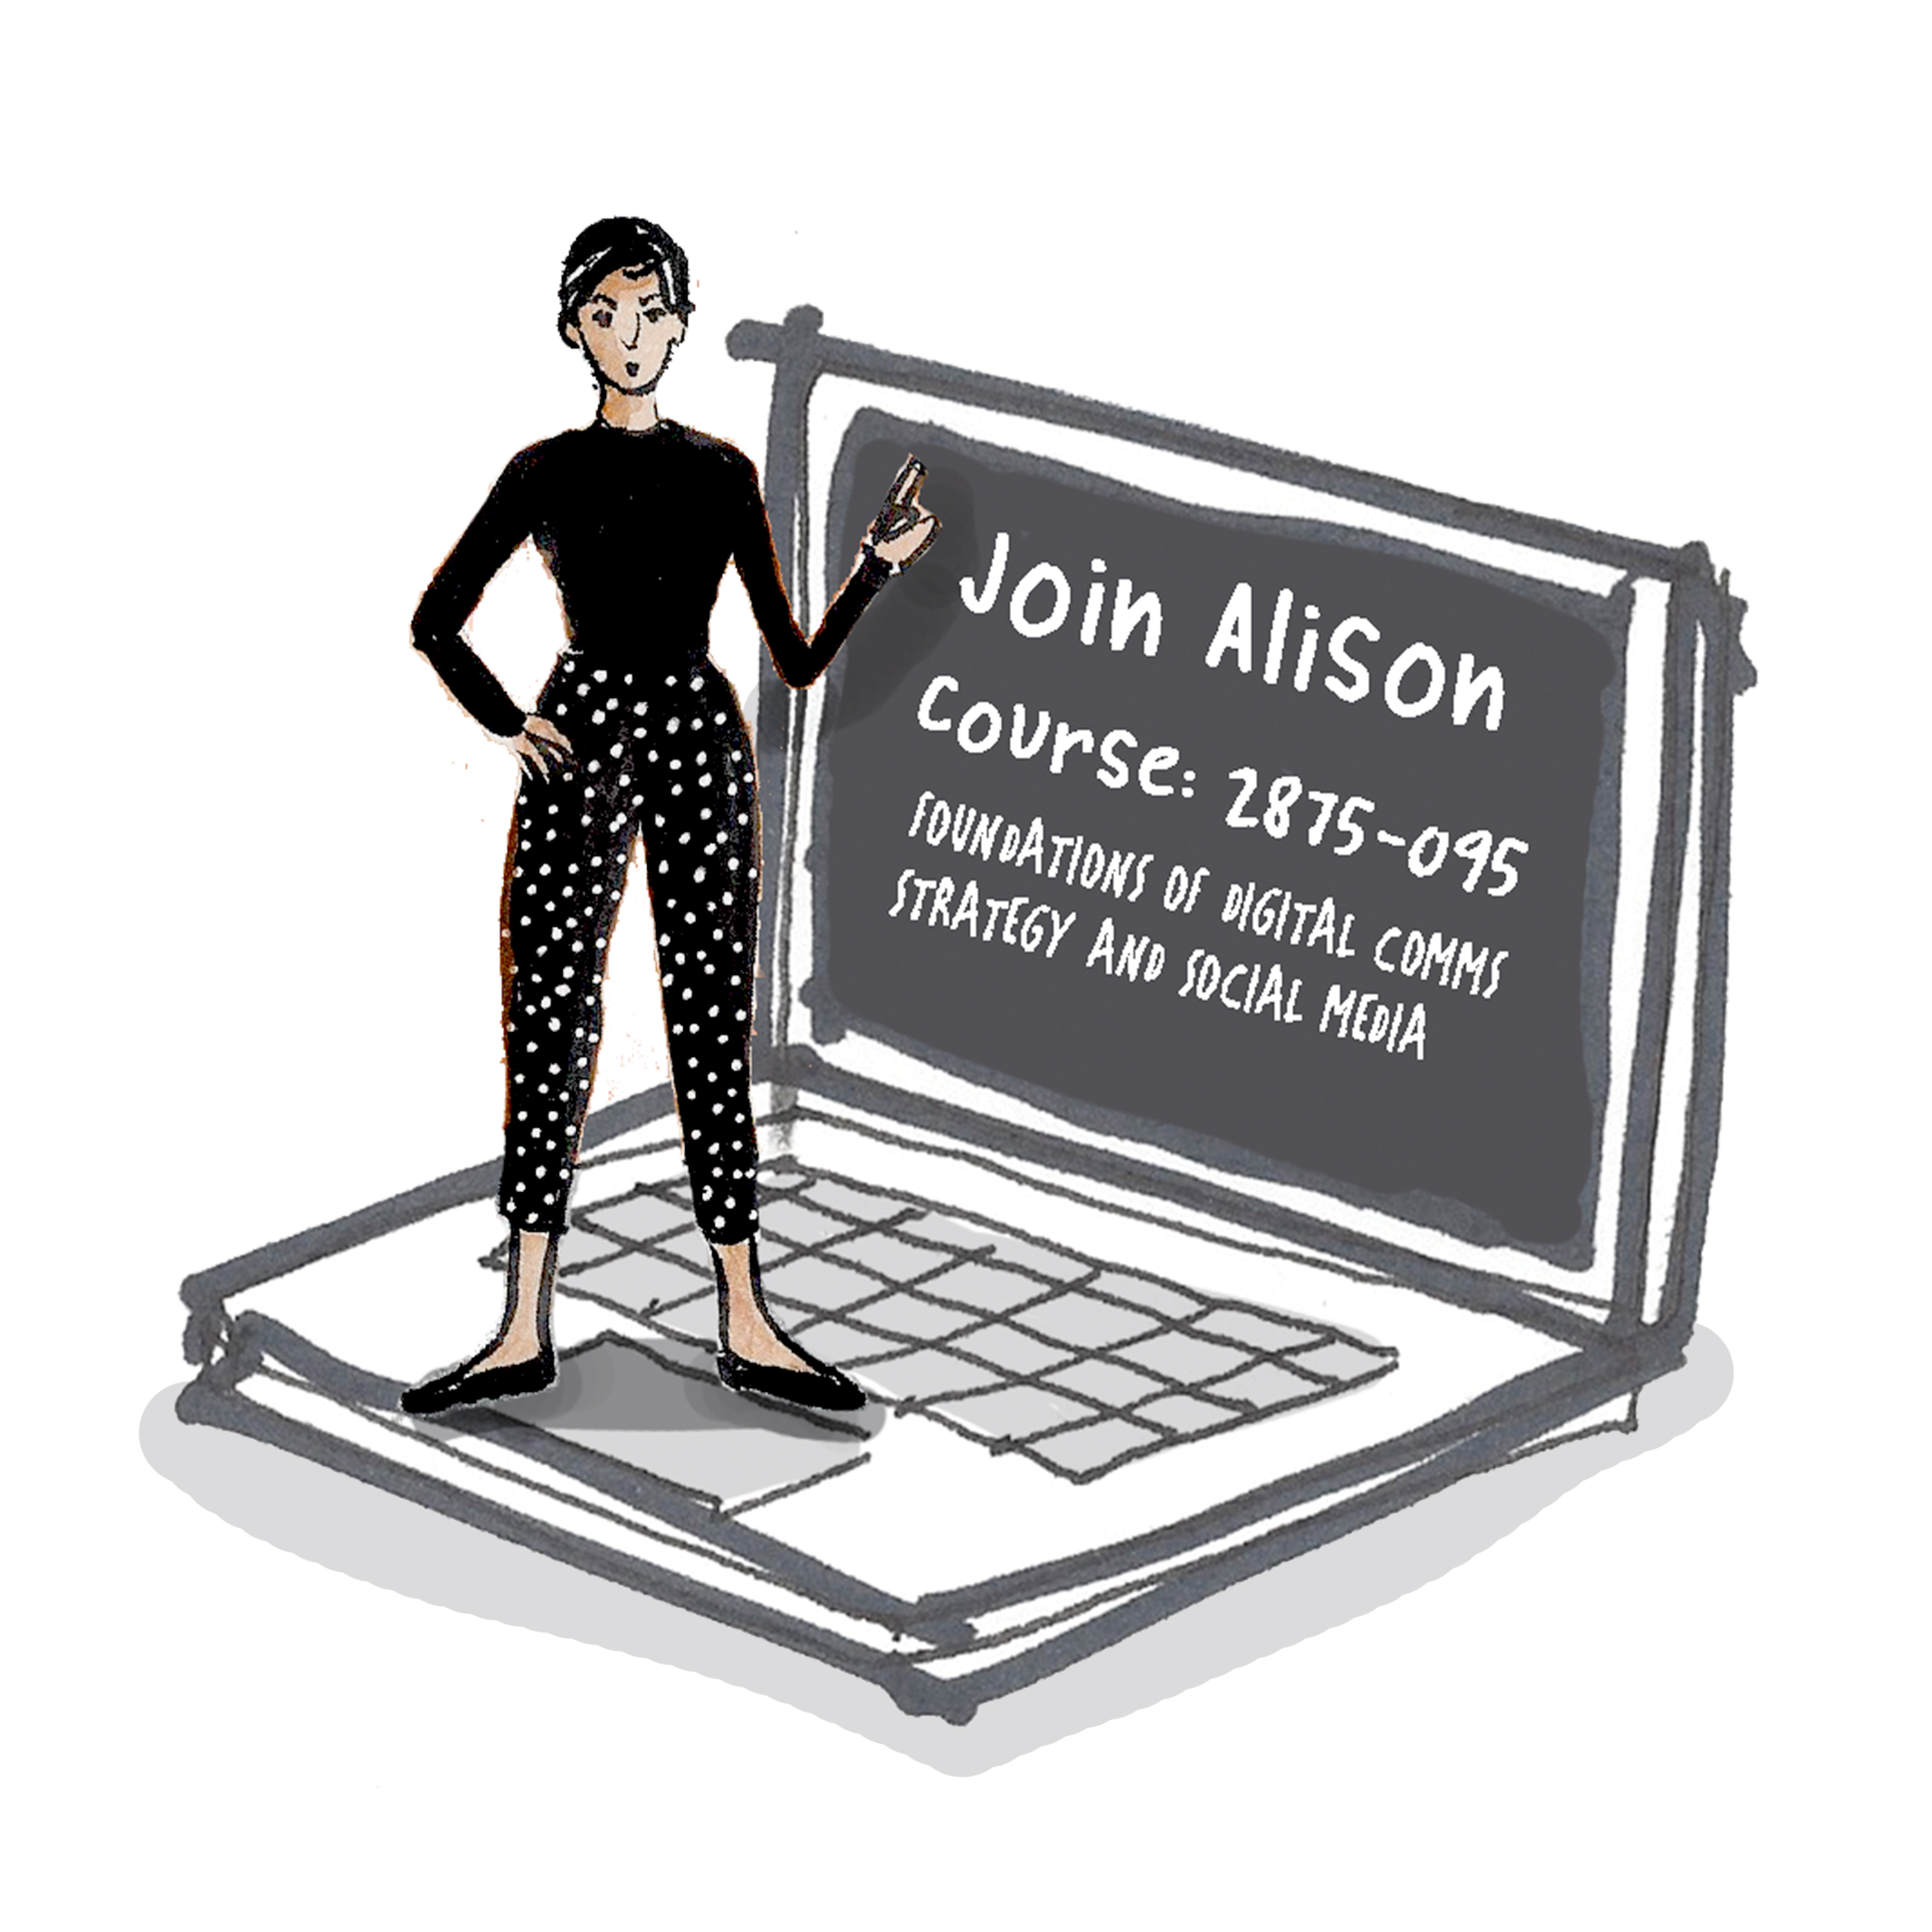 Learn Digital Strategy online this spring with Alison Garwood-Jones, University of Toronto School of Continuing Studies